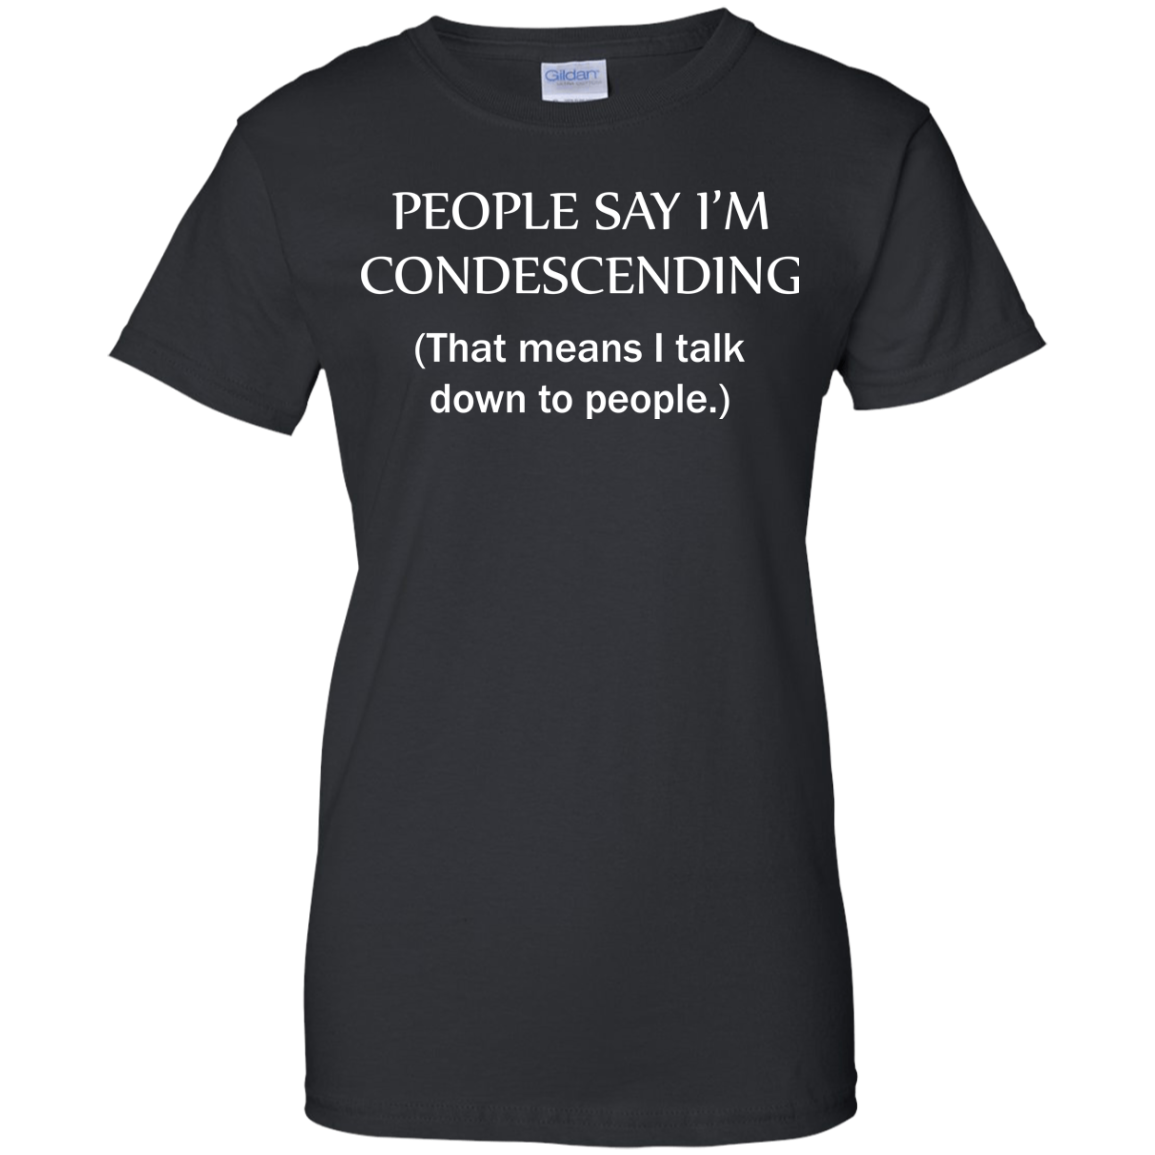 People say I'm condescending That means i talk down to people tshirt, vneck, tank, hoodie